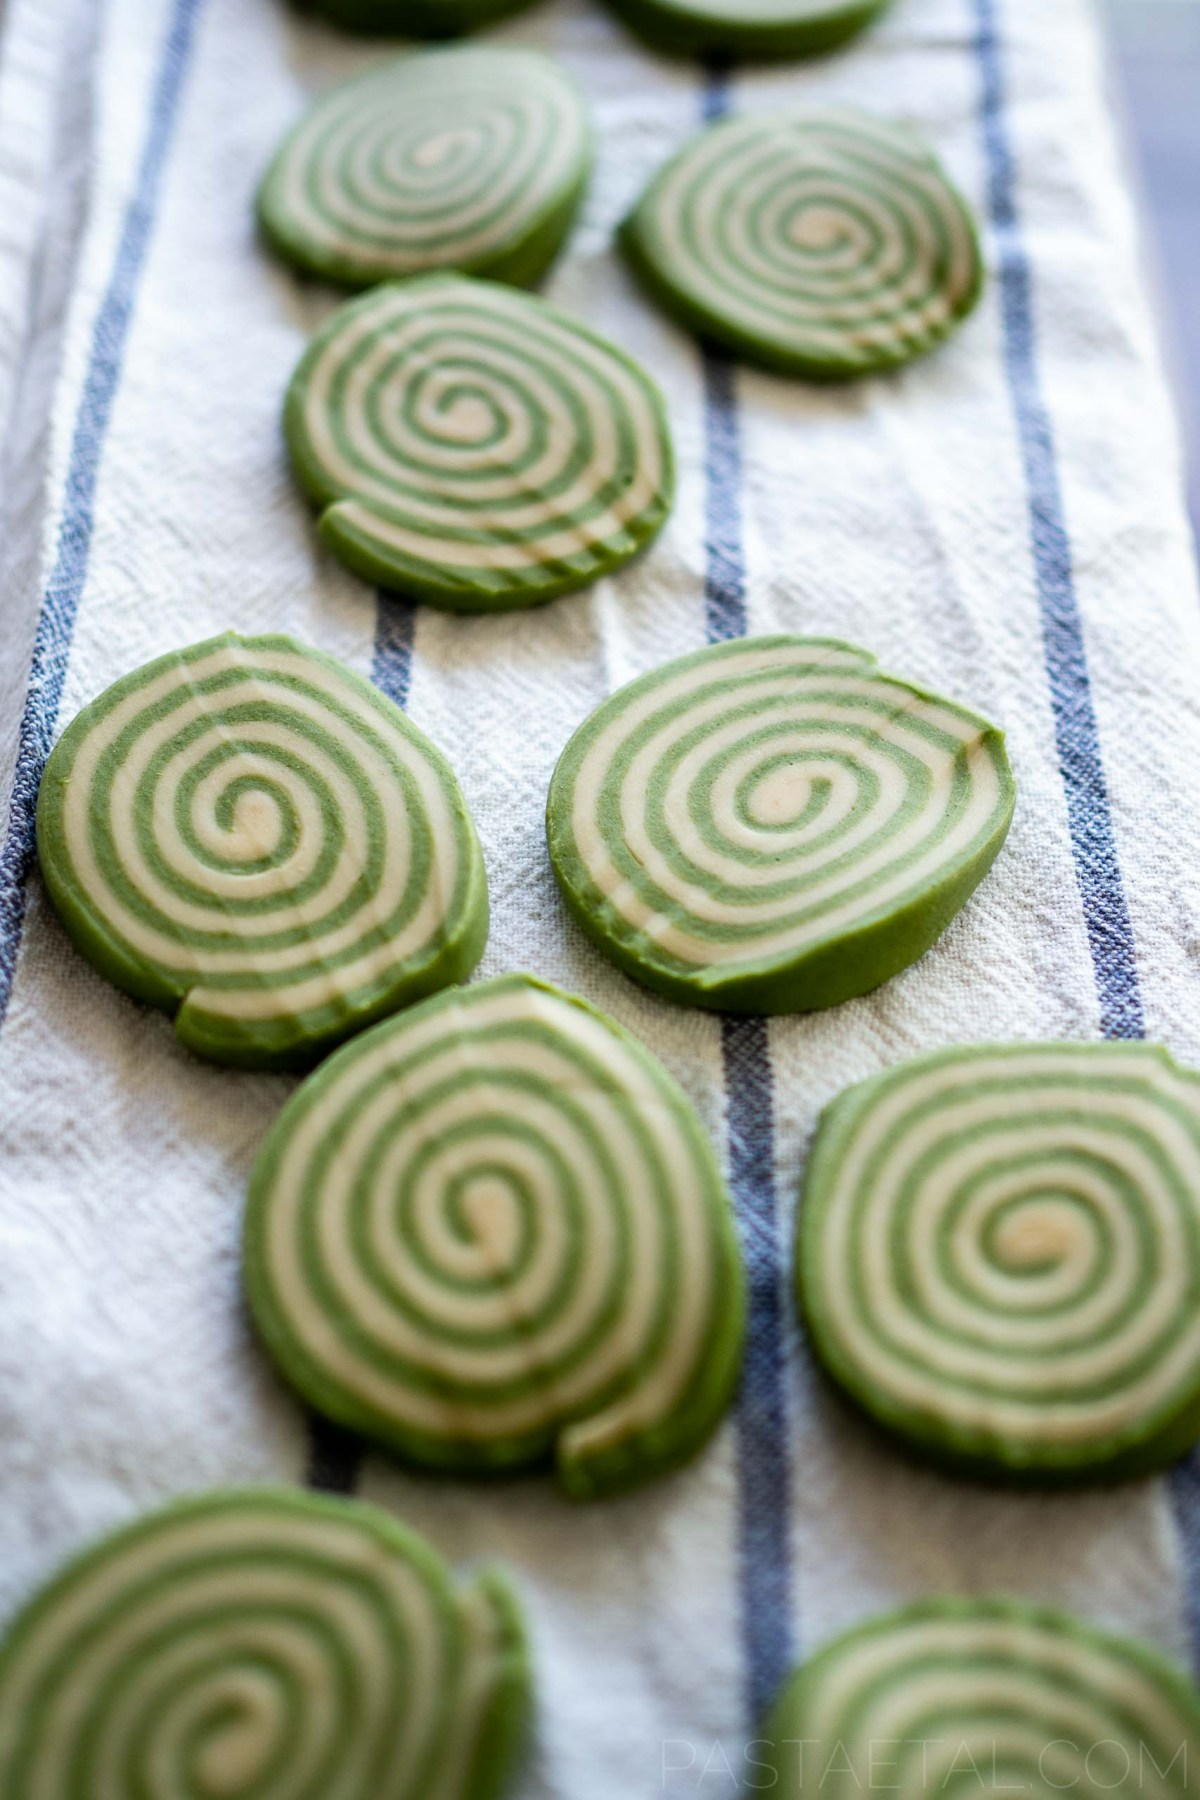 slices of spinach spiralled pasta dough